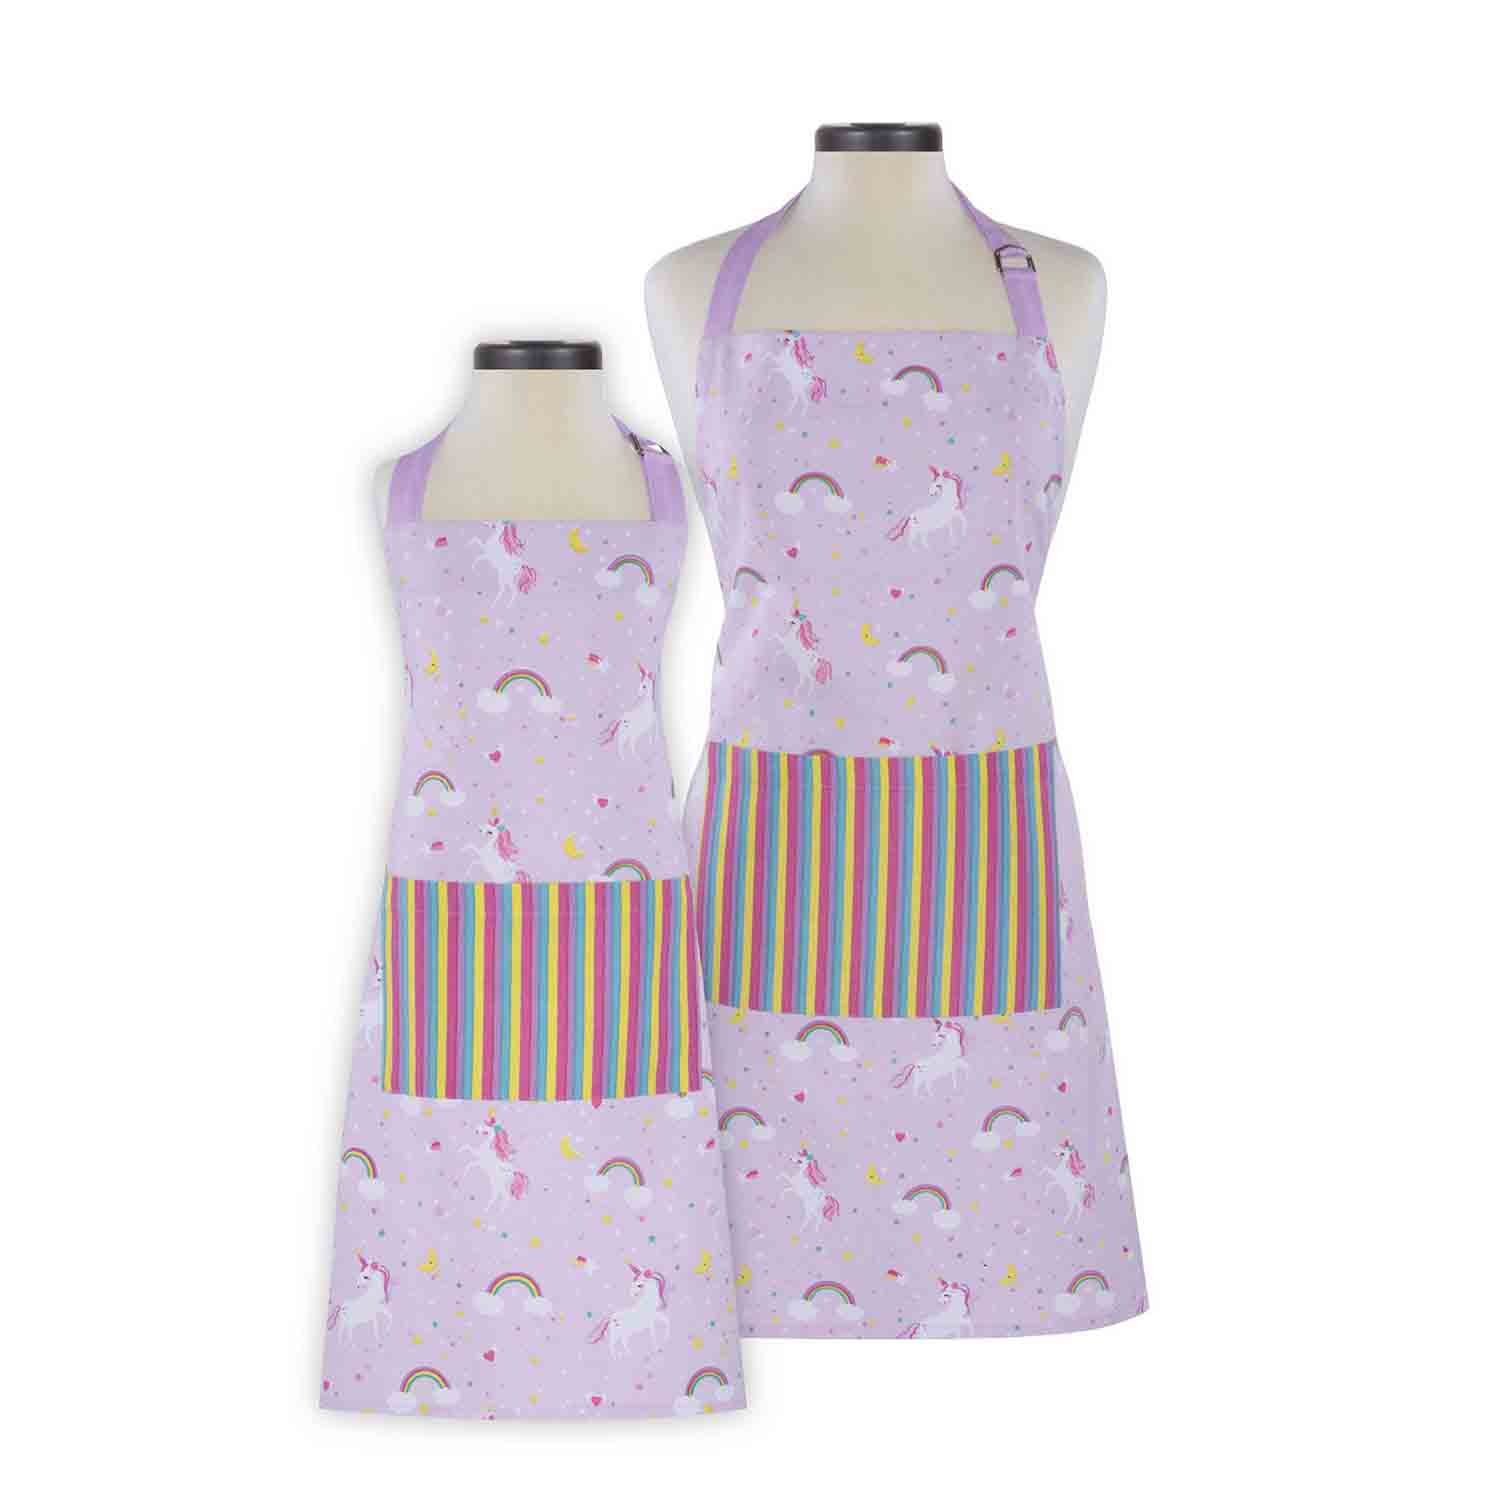 Rainbows & Unicorns Adult and Child Apron Set